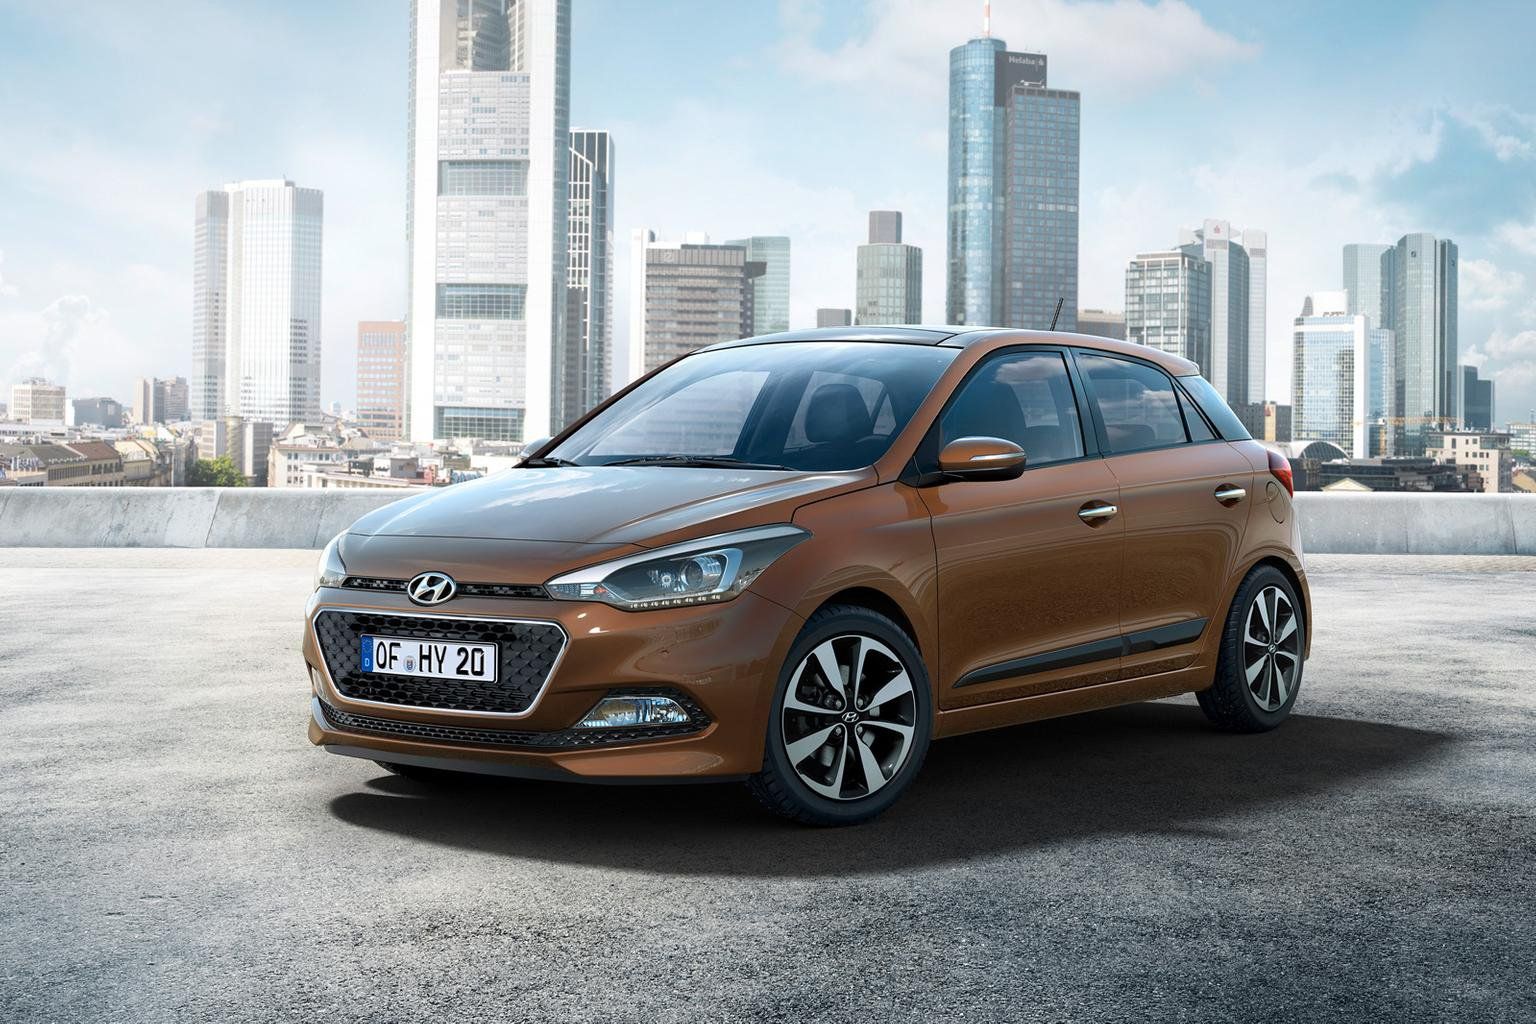 2015 Hyundai i20 revealed - full pricing, specs, pictures and video